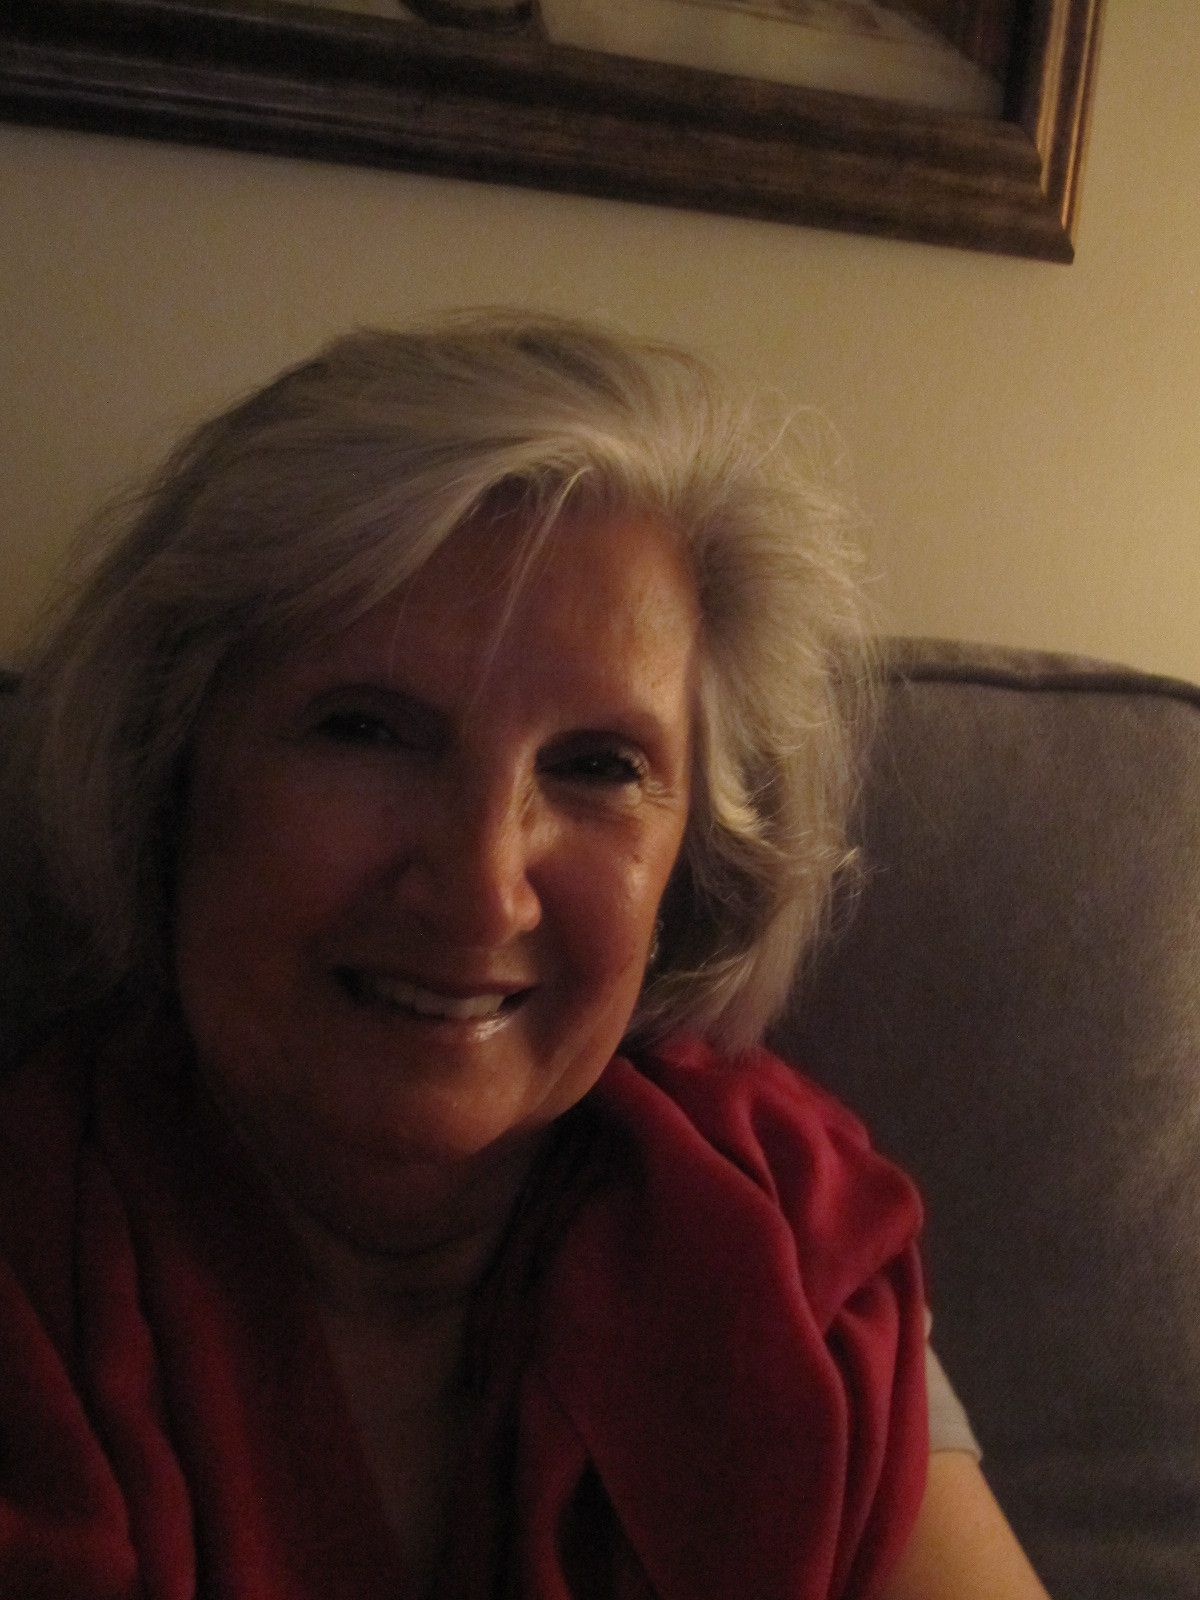 singles over 50 in columbia county Singles over 50 if you're having a hard time meeting singles over 50, you're not alone meeting someone special when you are a little older can be a bit of a challenge, but it doesn't have.